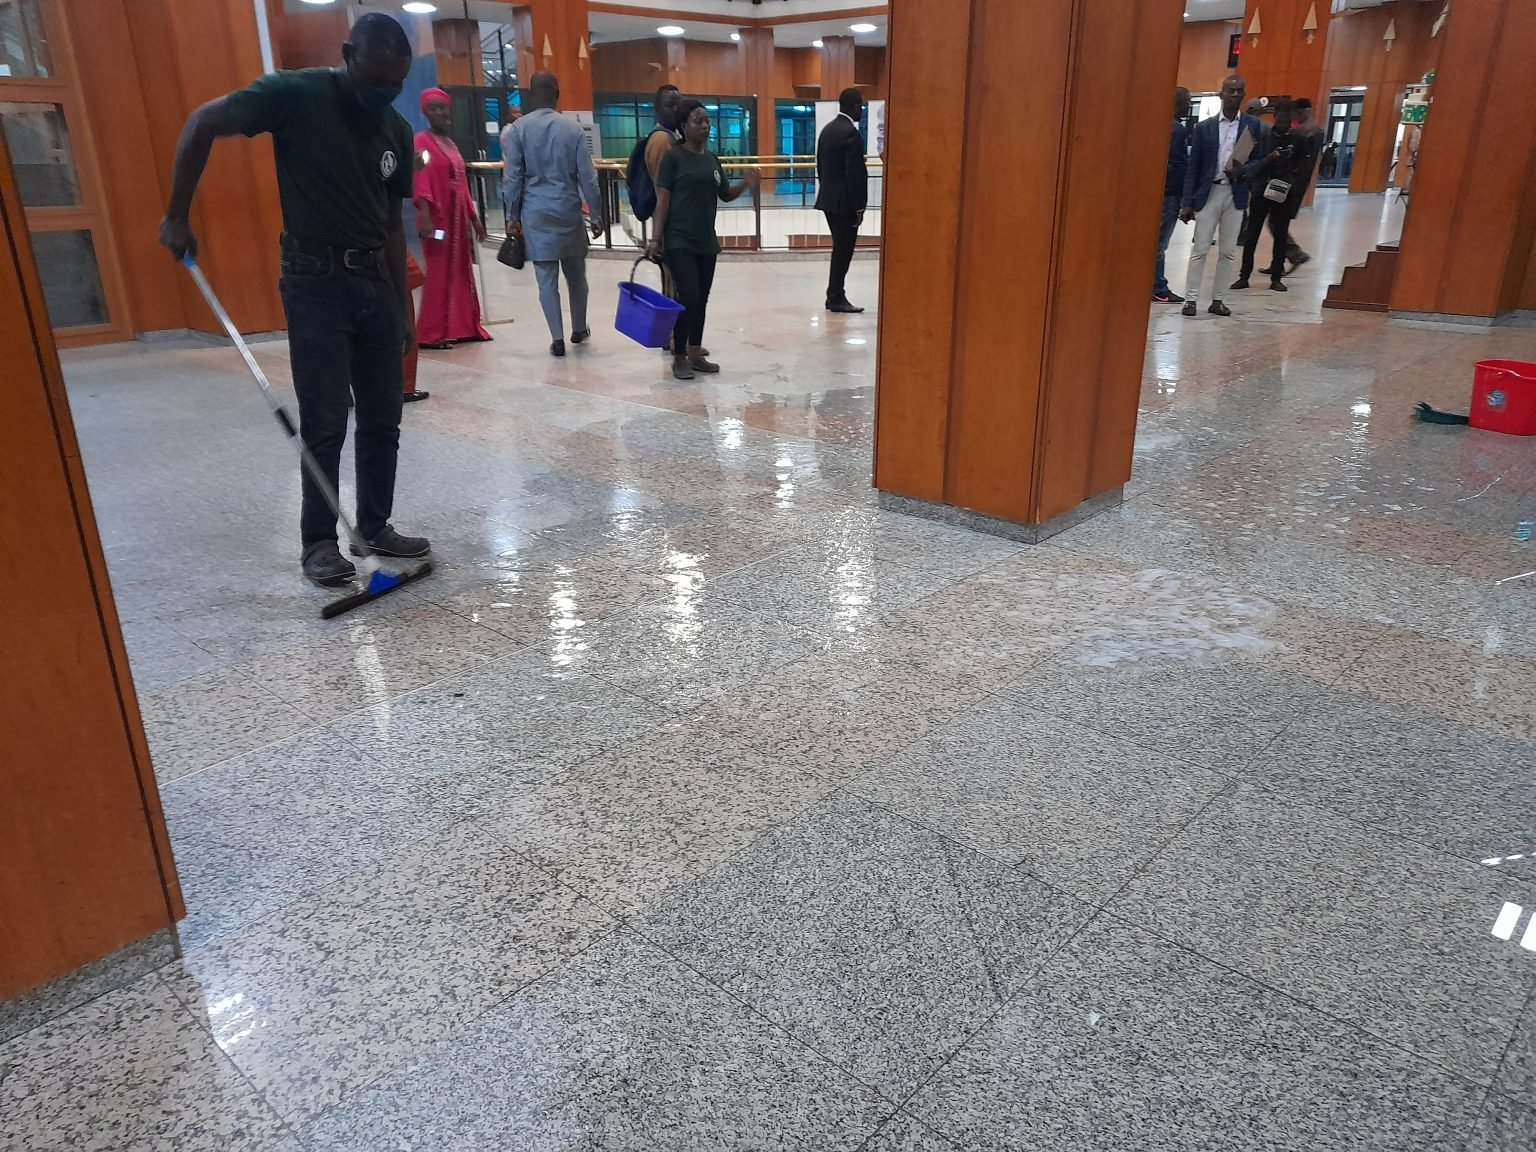 Again, National Assembly flooded as complex roofs continue to leak